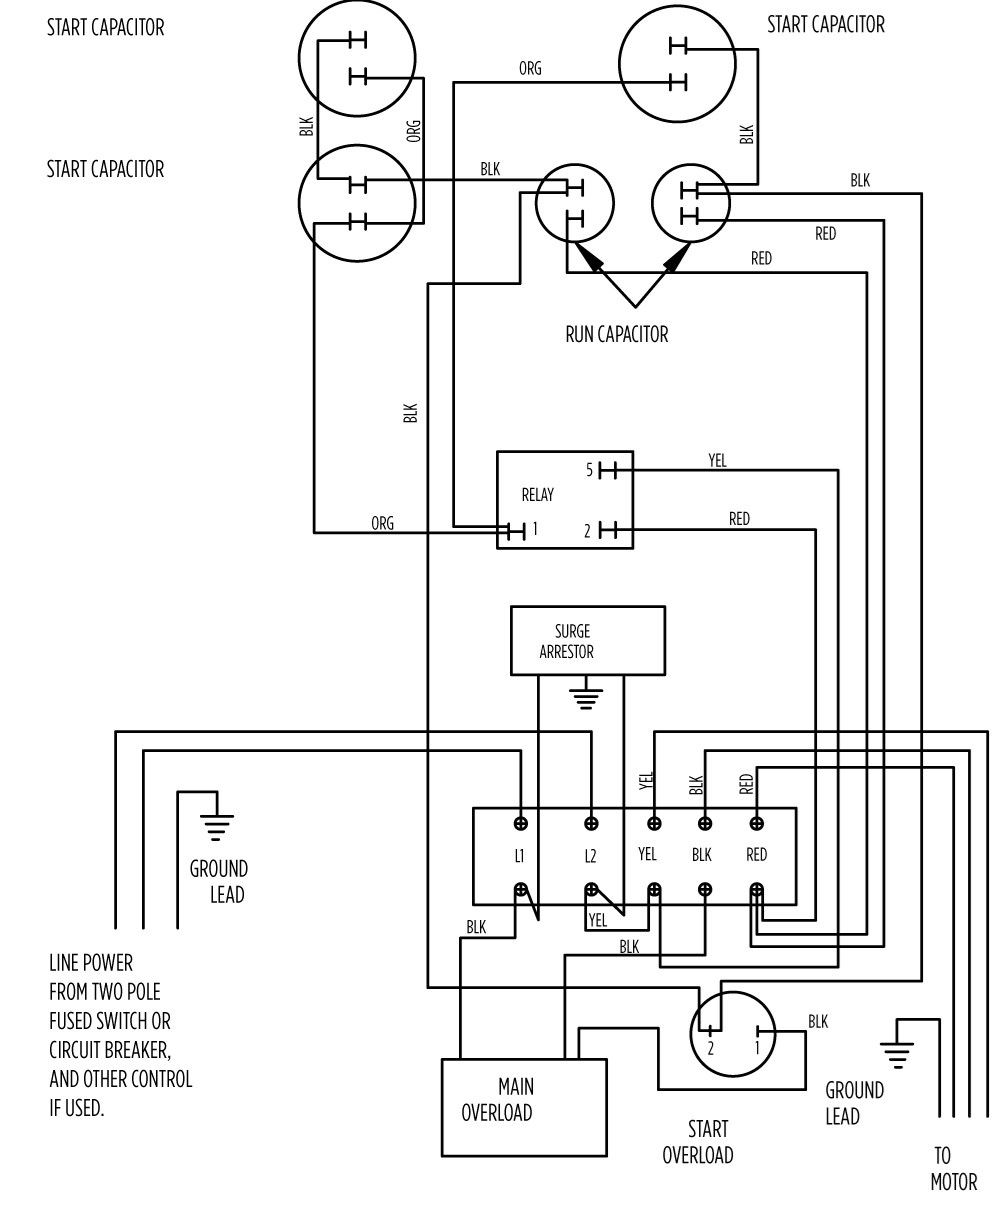 Single Phase Electric Motor Wiring Diagrams Library 30 Breaker Diagram 10 Hp Standard 282 202 9210 Or 9230